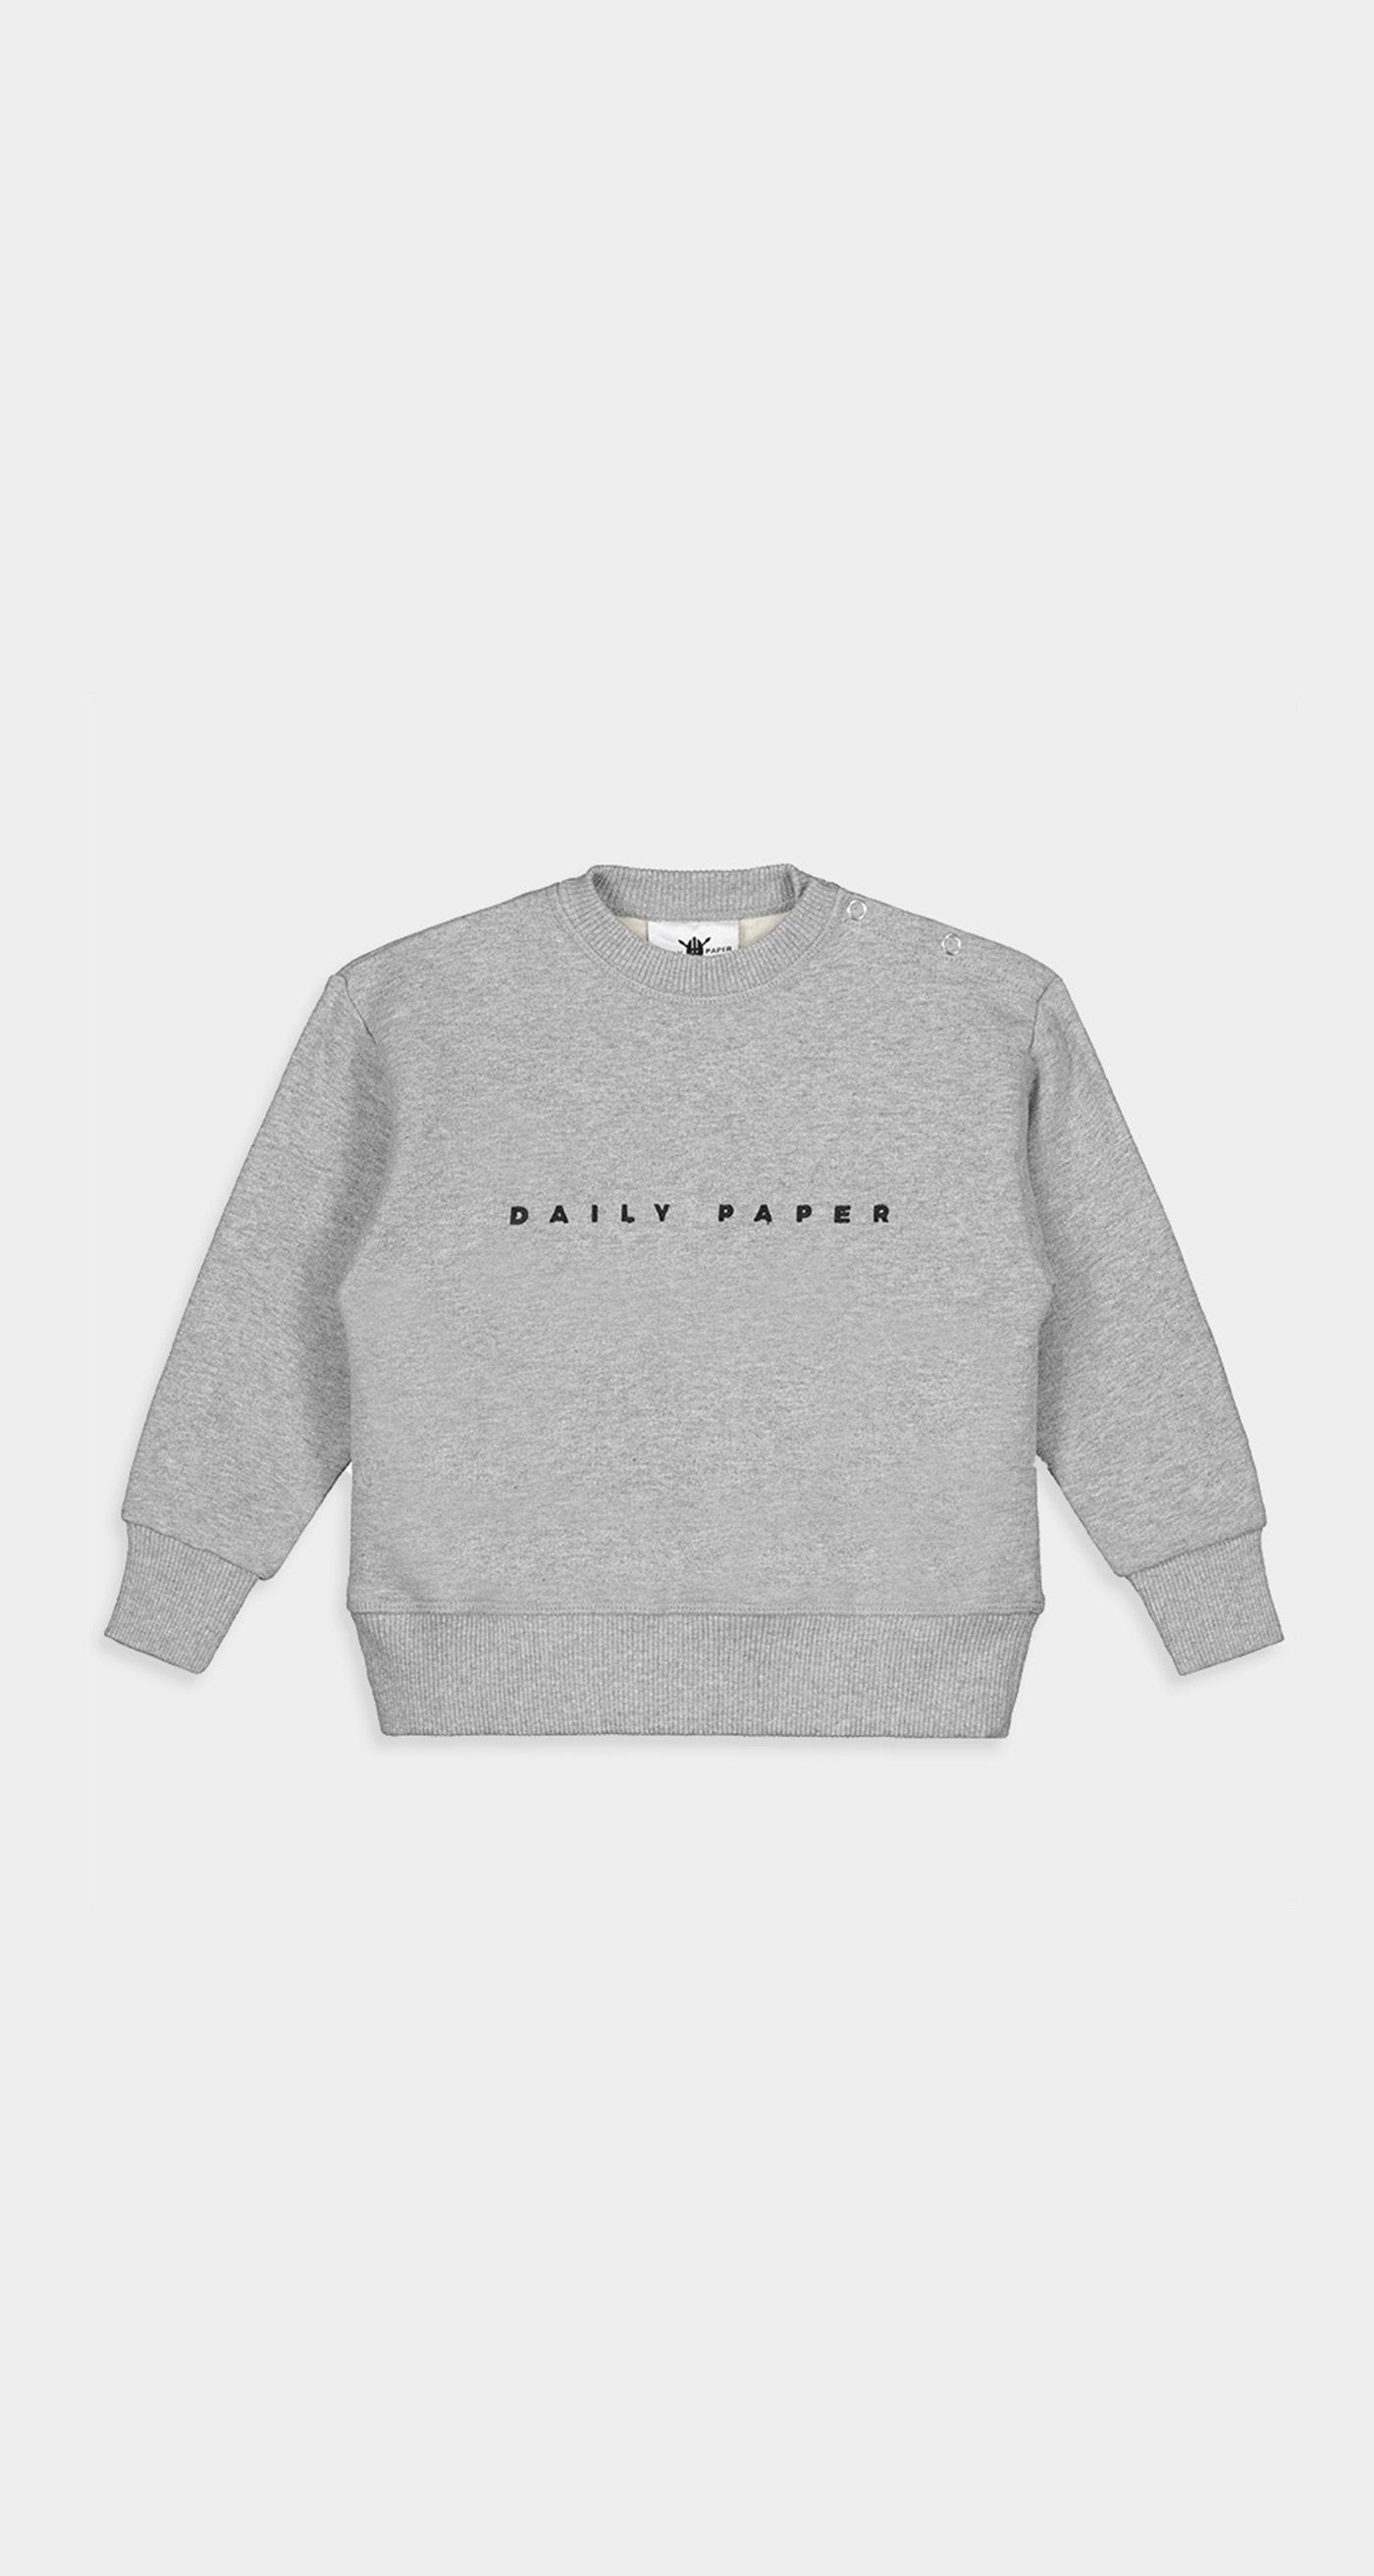 Daily Paper - Grey Kids Alias Sweater Front